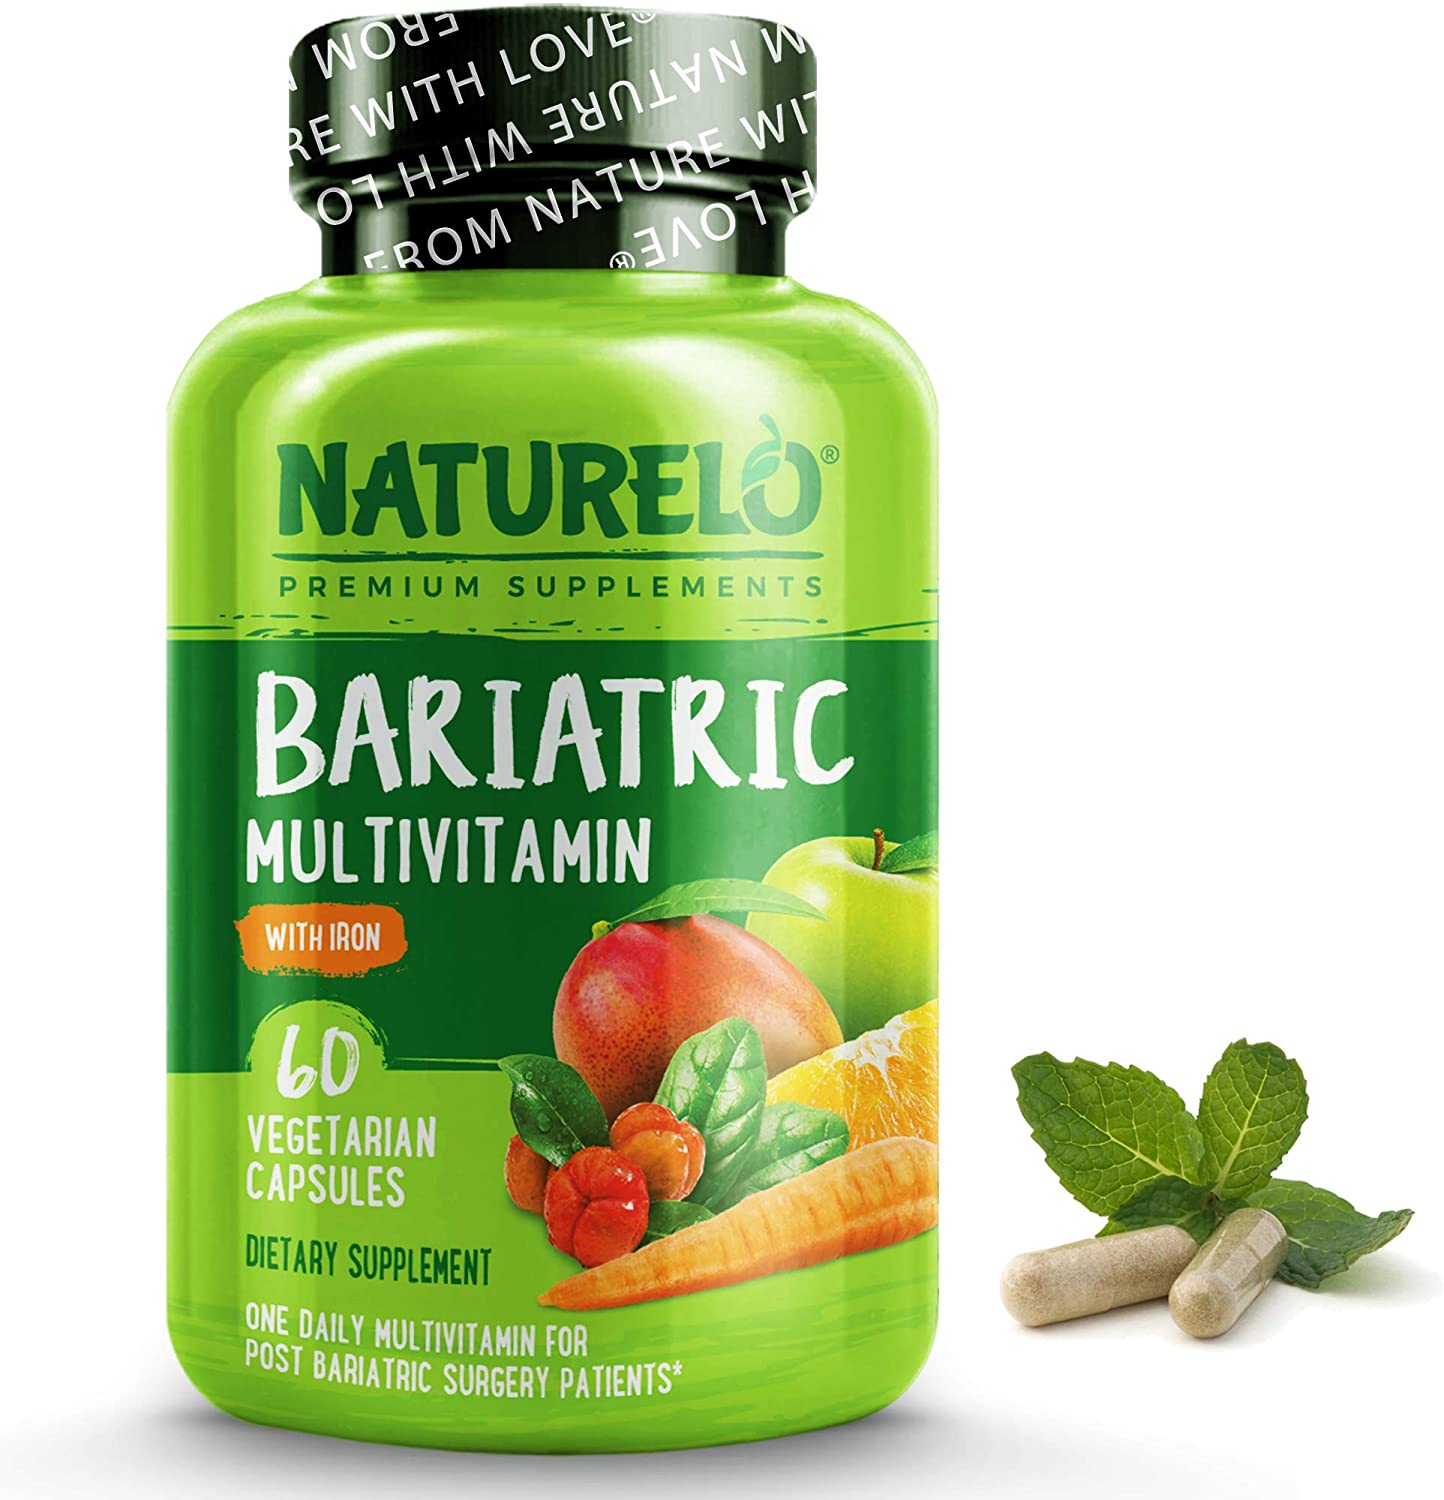 NATURELO Bariatric Multivitamin - One Daily with Iron - Supplement for Post Gastric Bypass Surgery Patients - Natural Whole Food Nutrition - 60 Veggie Capsules